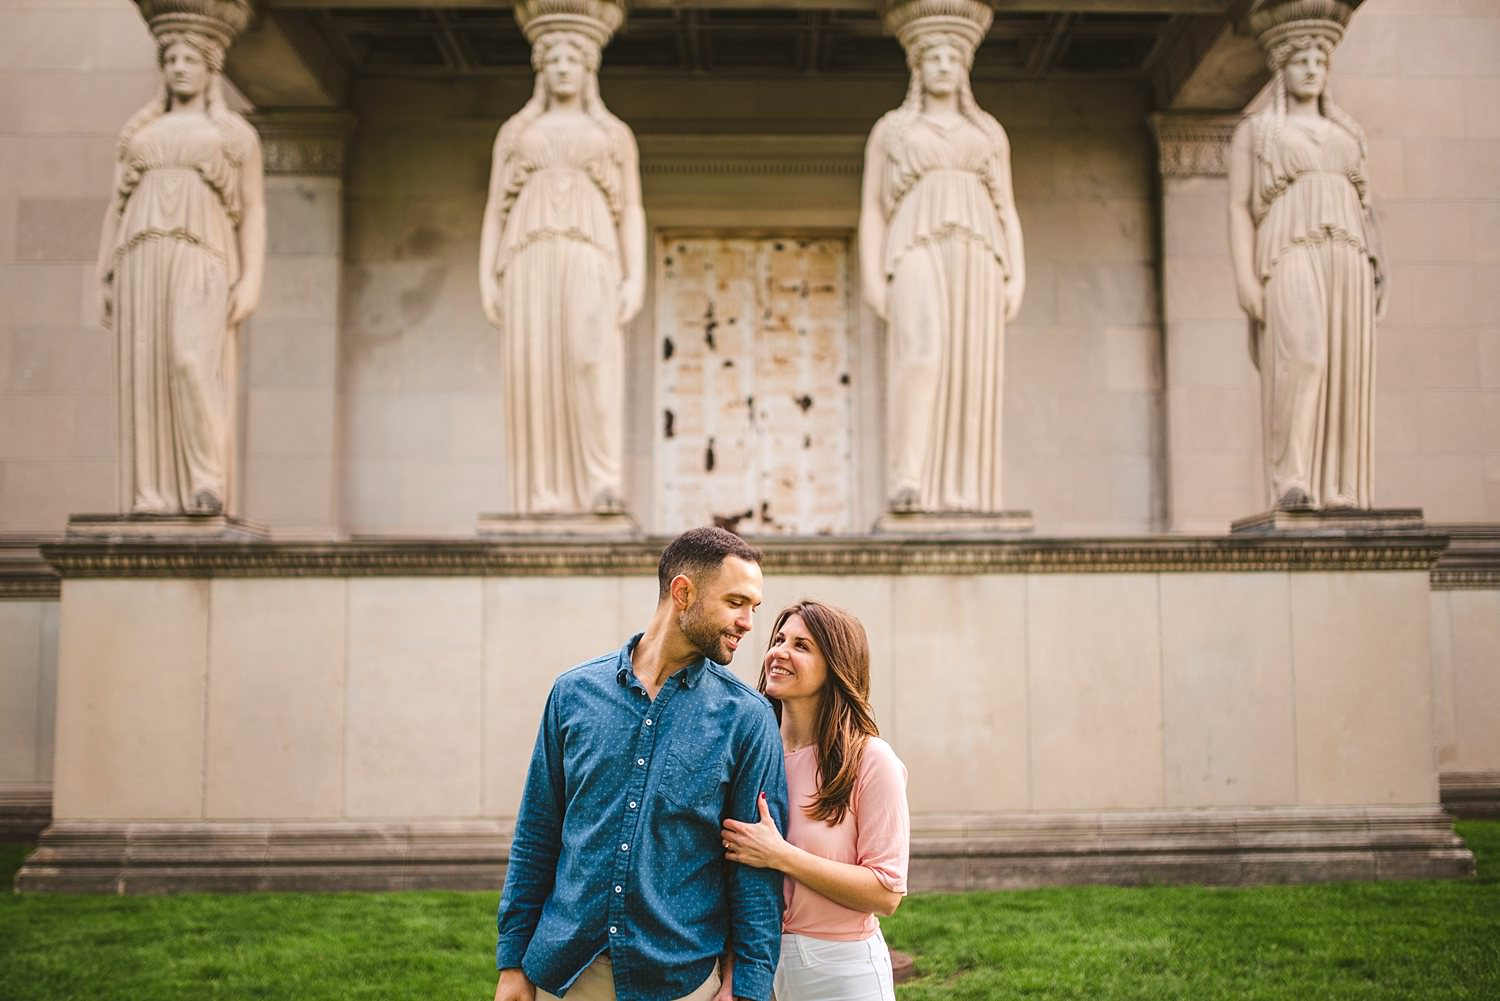 Downtown Chicago Engagement Photos - Museum of Science and Industry Session - Elizabeth and Dan -38.jpg